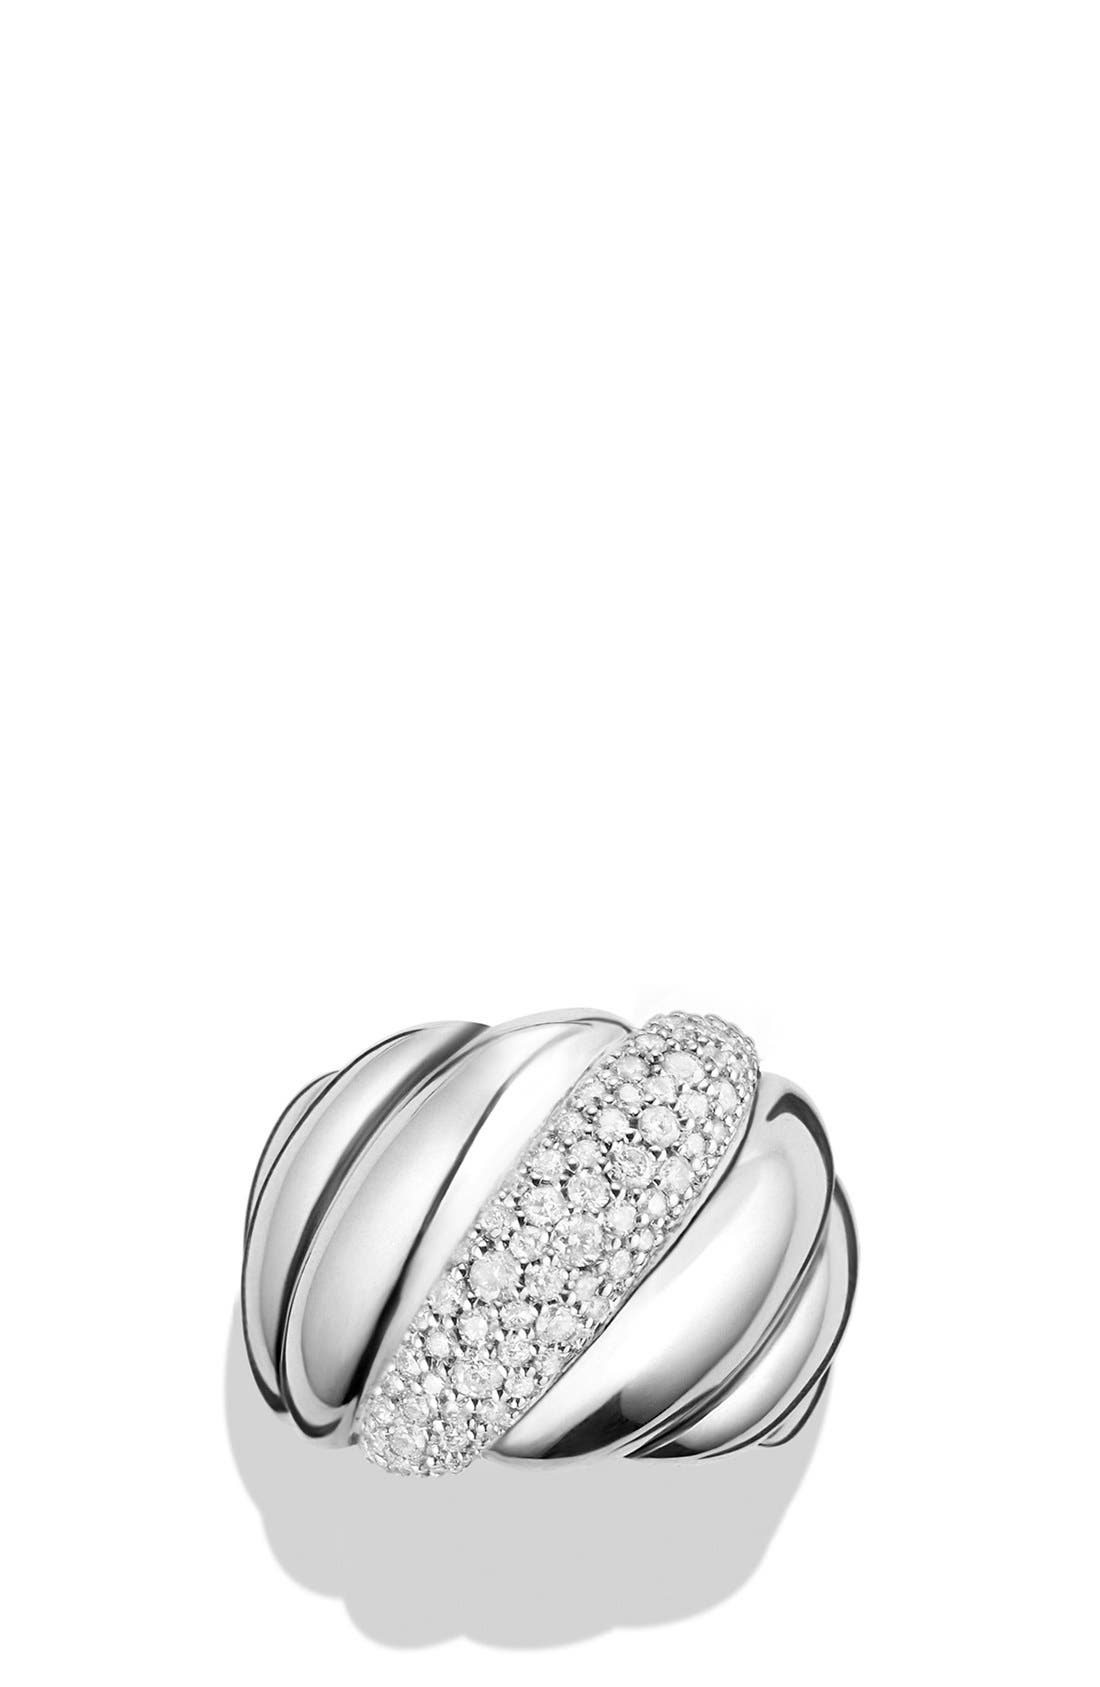 'Hampton Cable' Ring with Diamonds,                             Alternate thumbnail 3, color,                             041